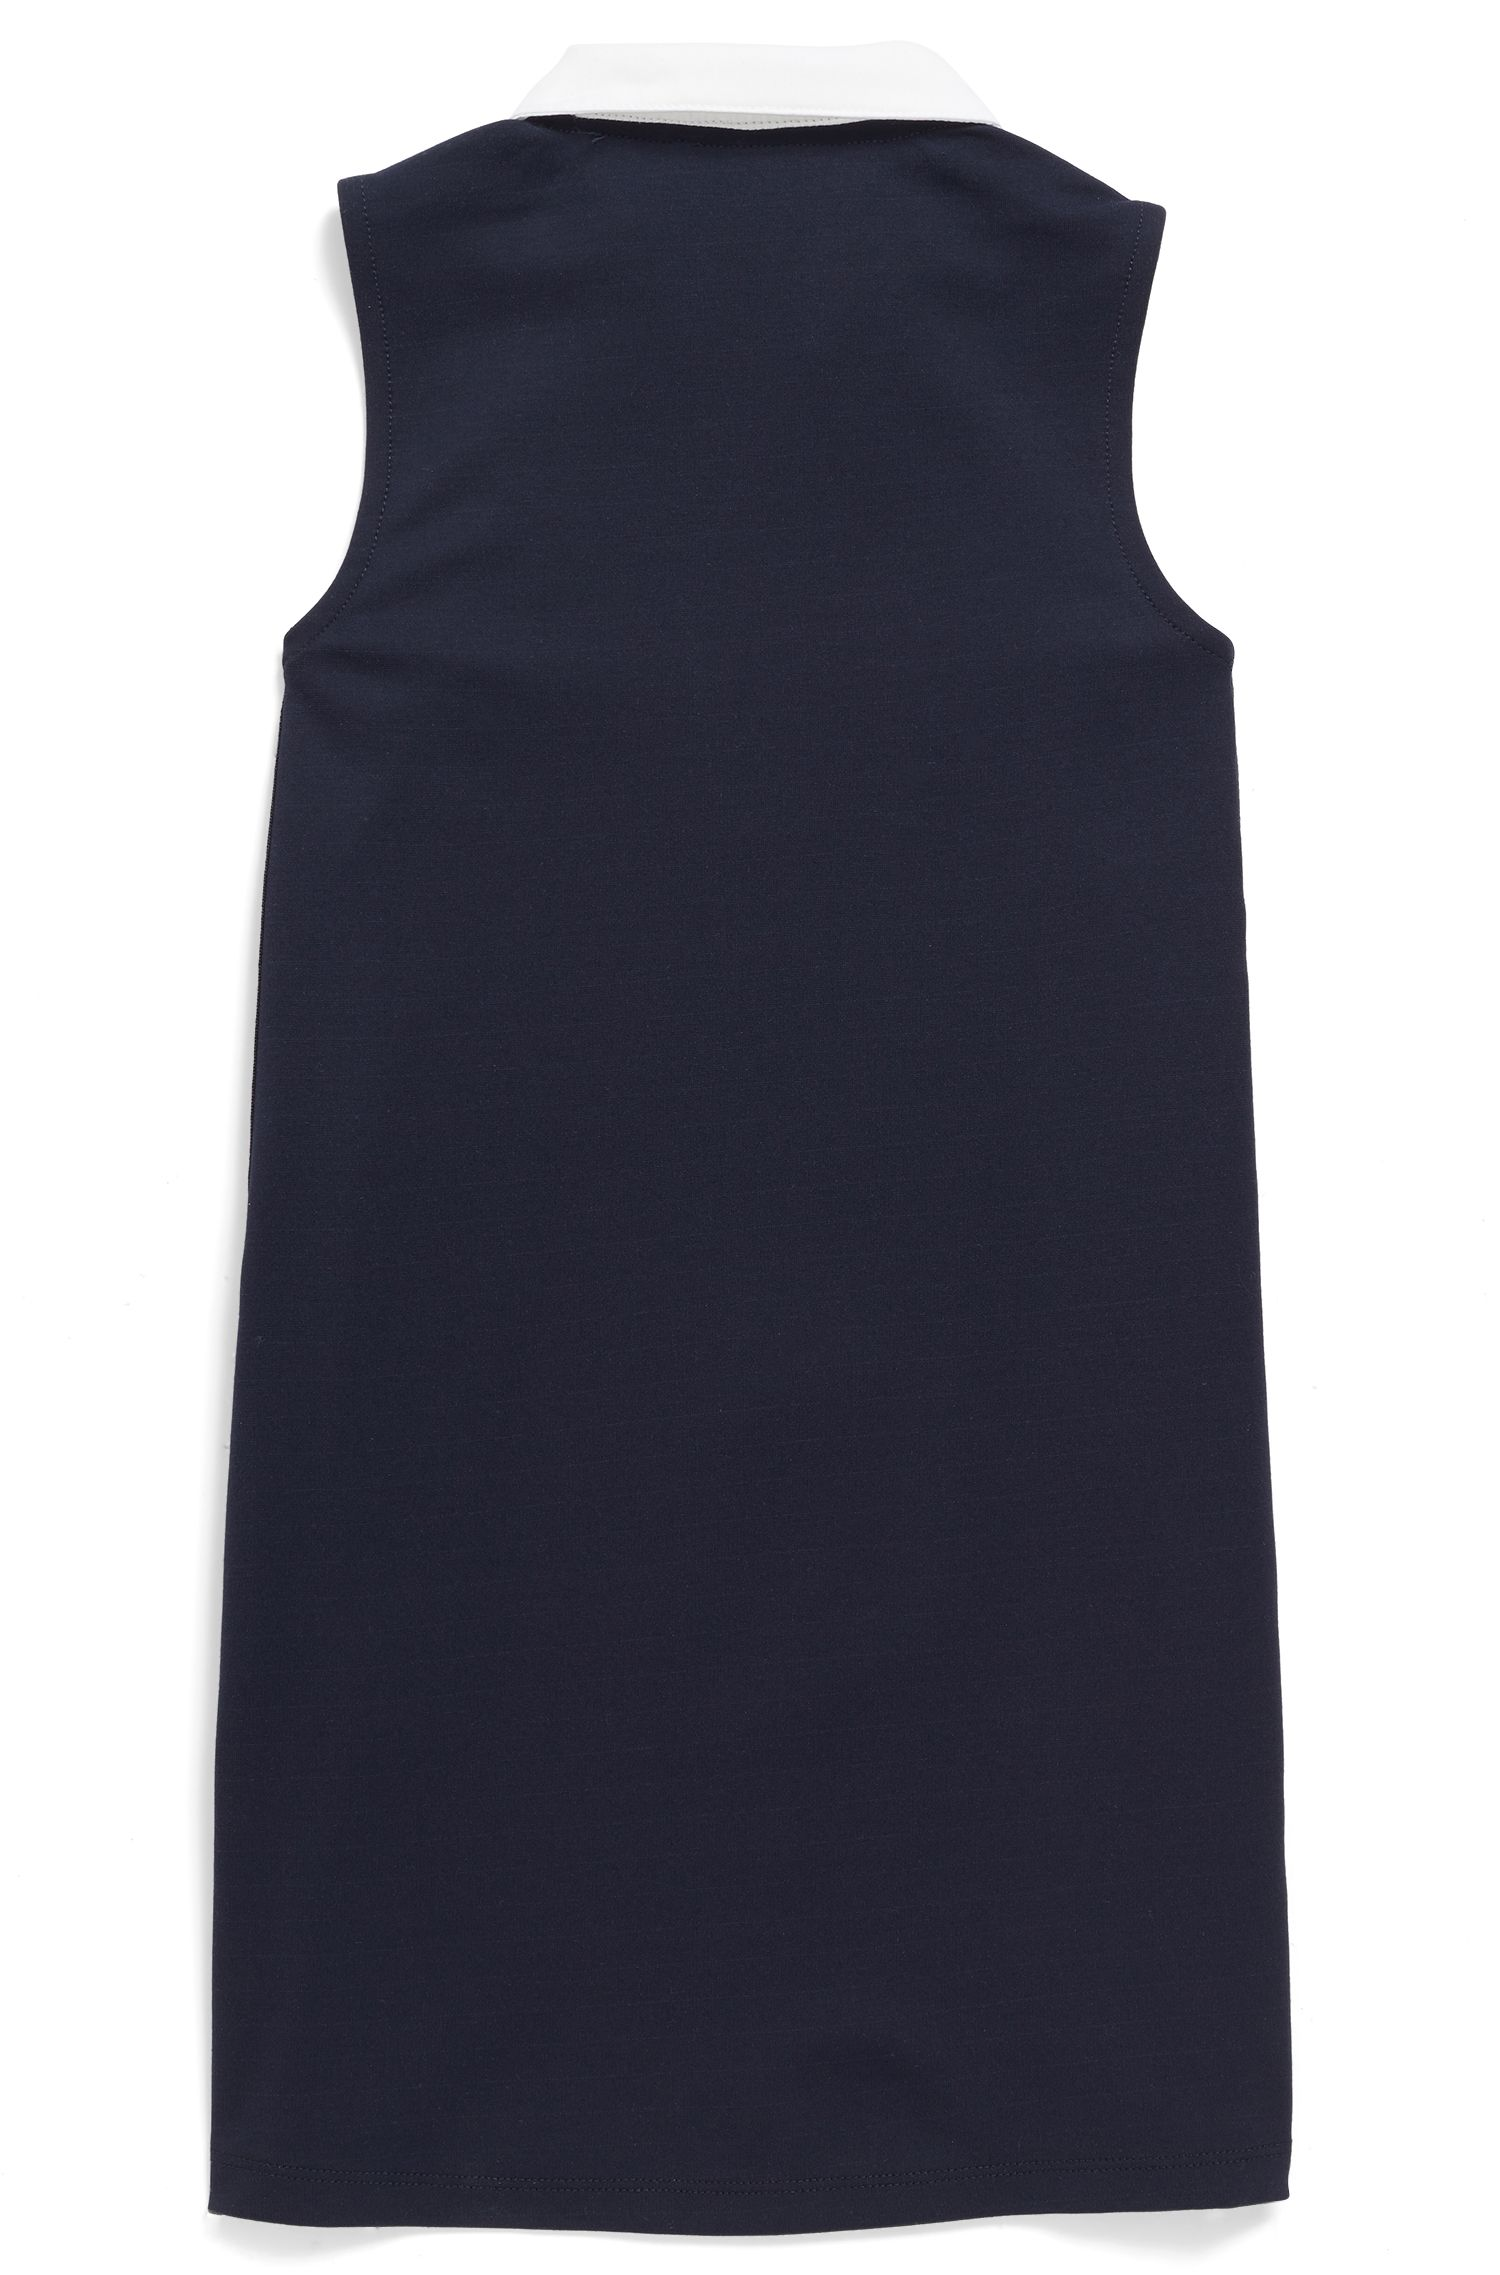 Kids' sleeveless tennis dress with contrast sateen collar, Dark Blue